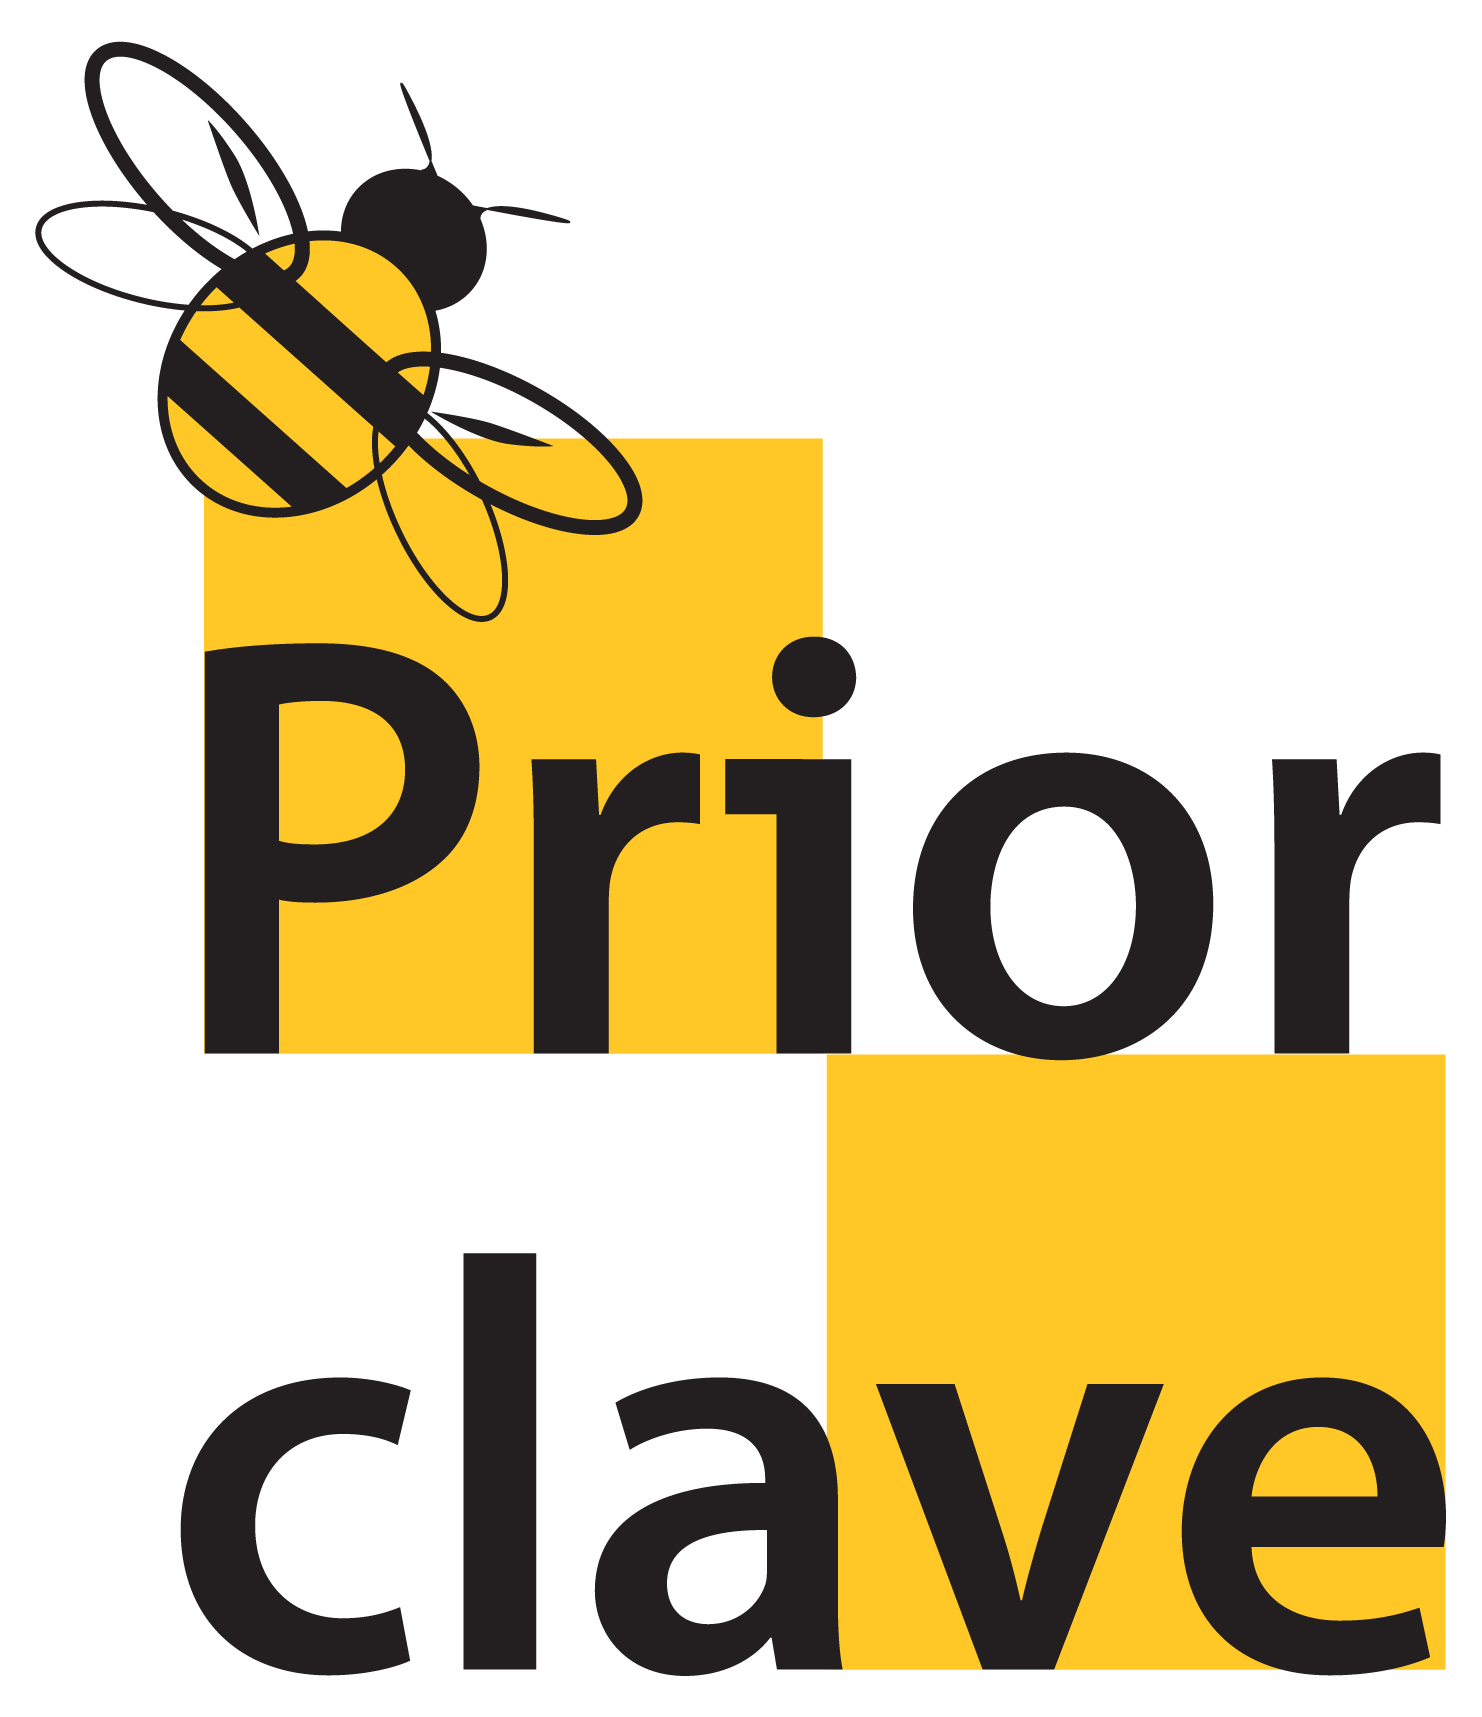 priorclave_logo.png